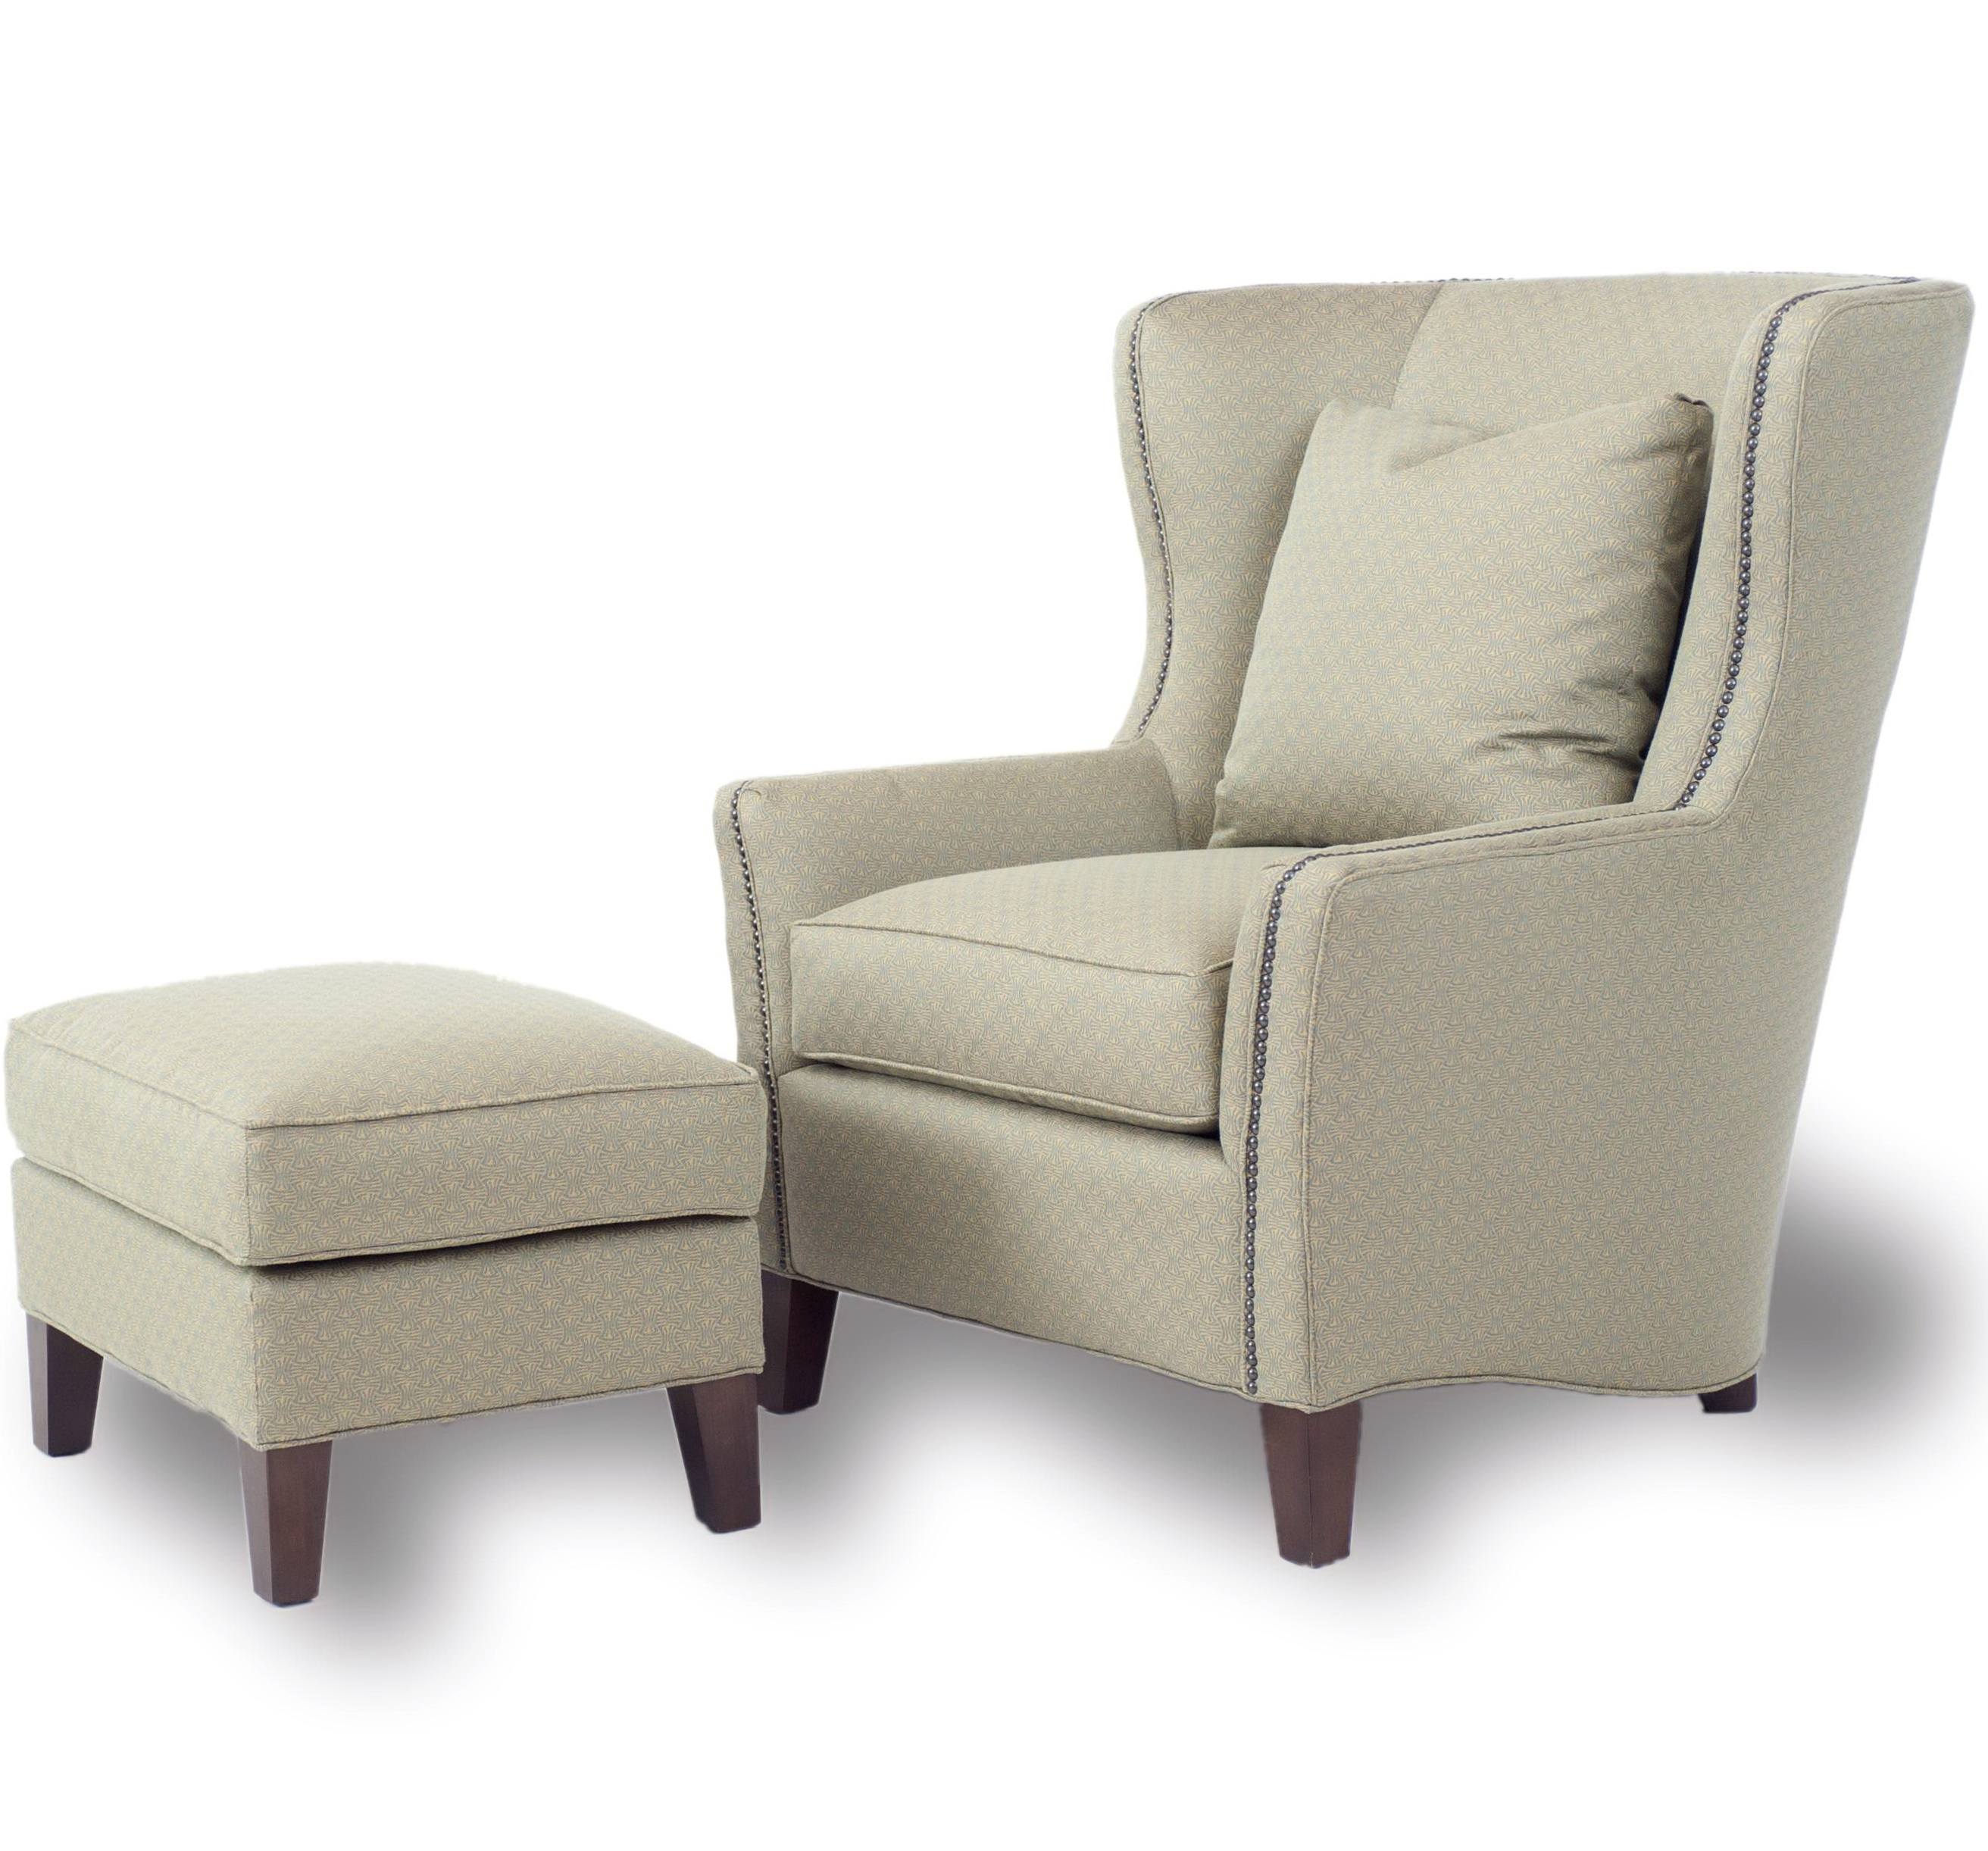 Chairs And Ottomans For Sale